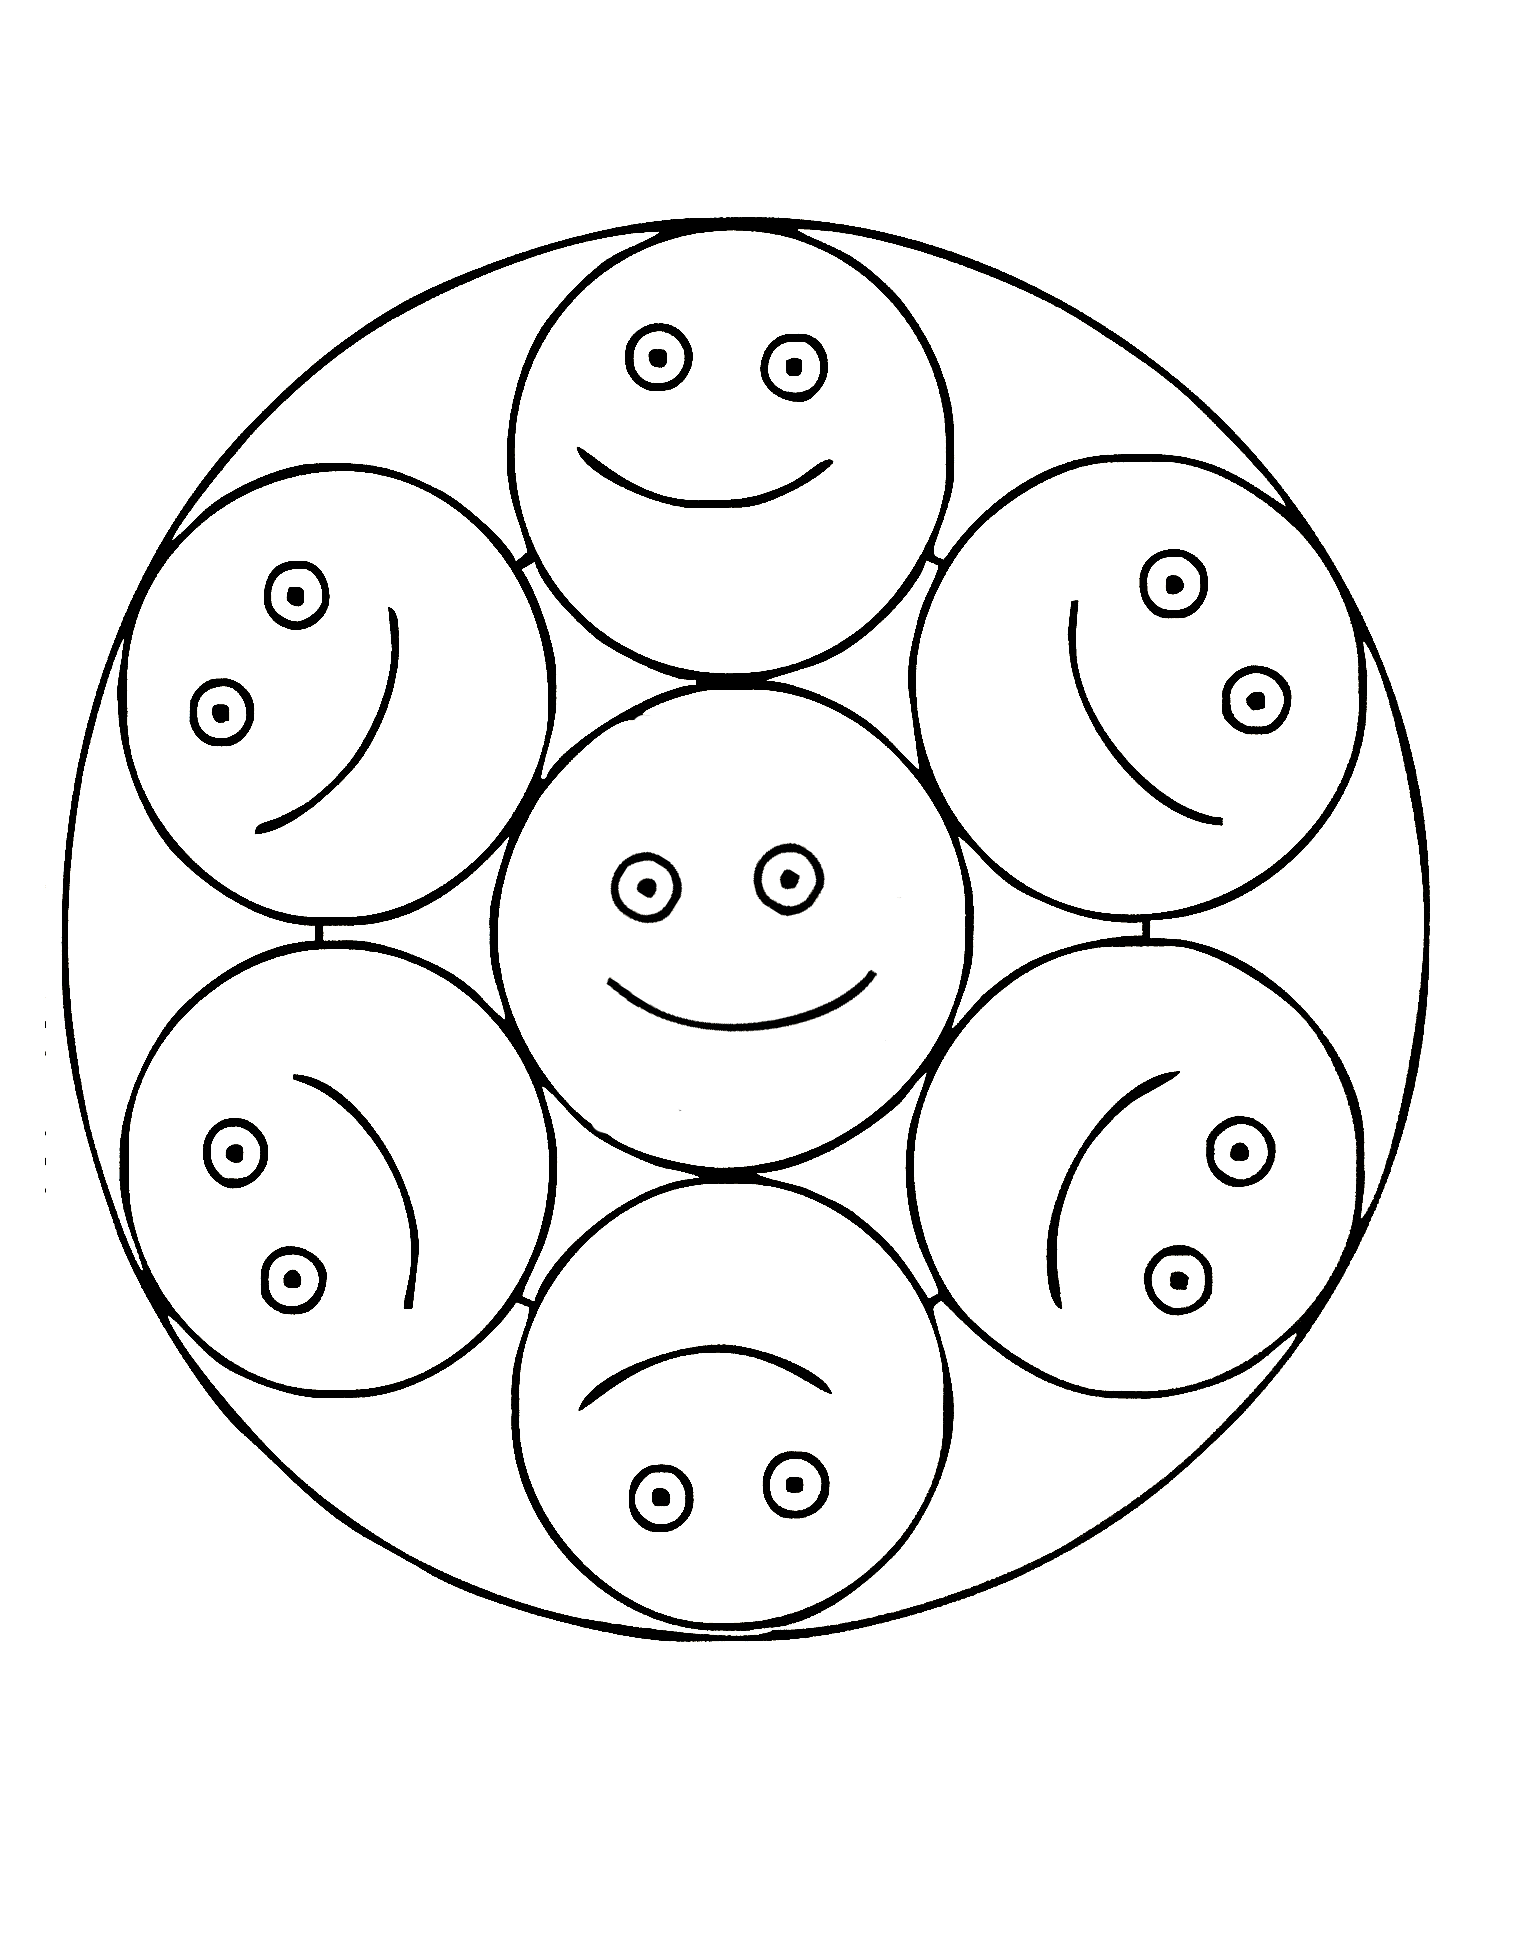 Mandalas With Characters